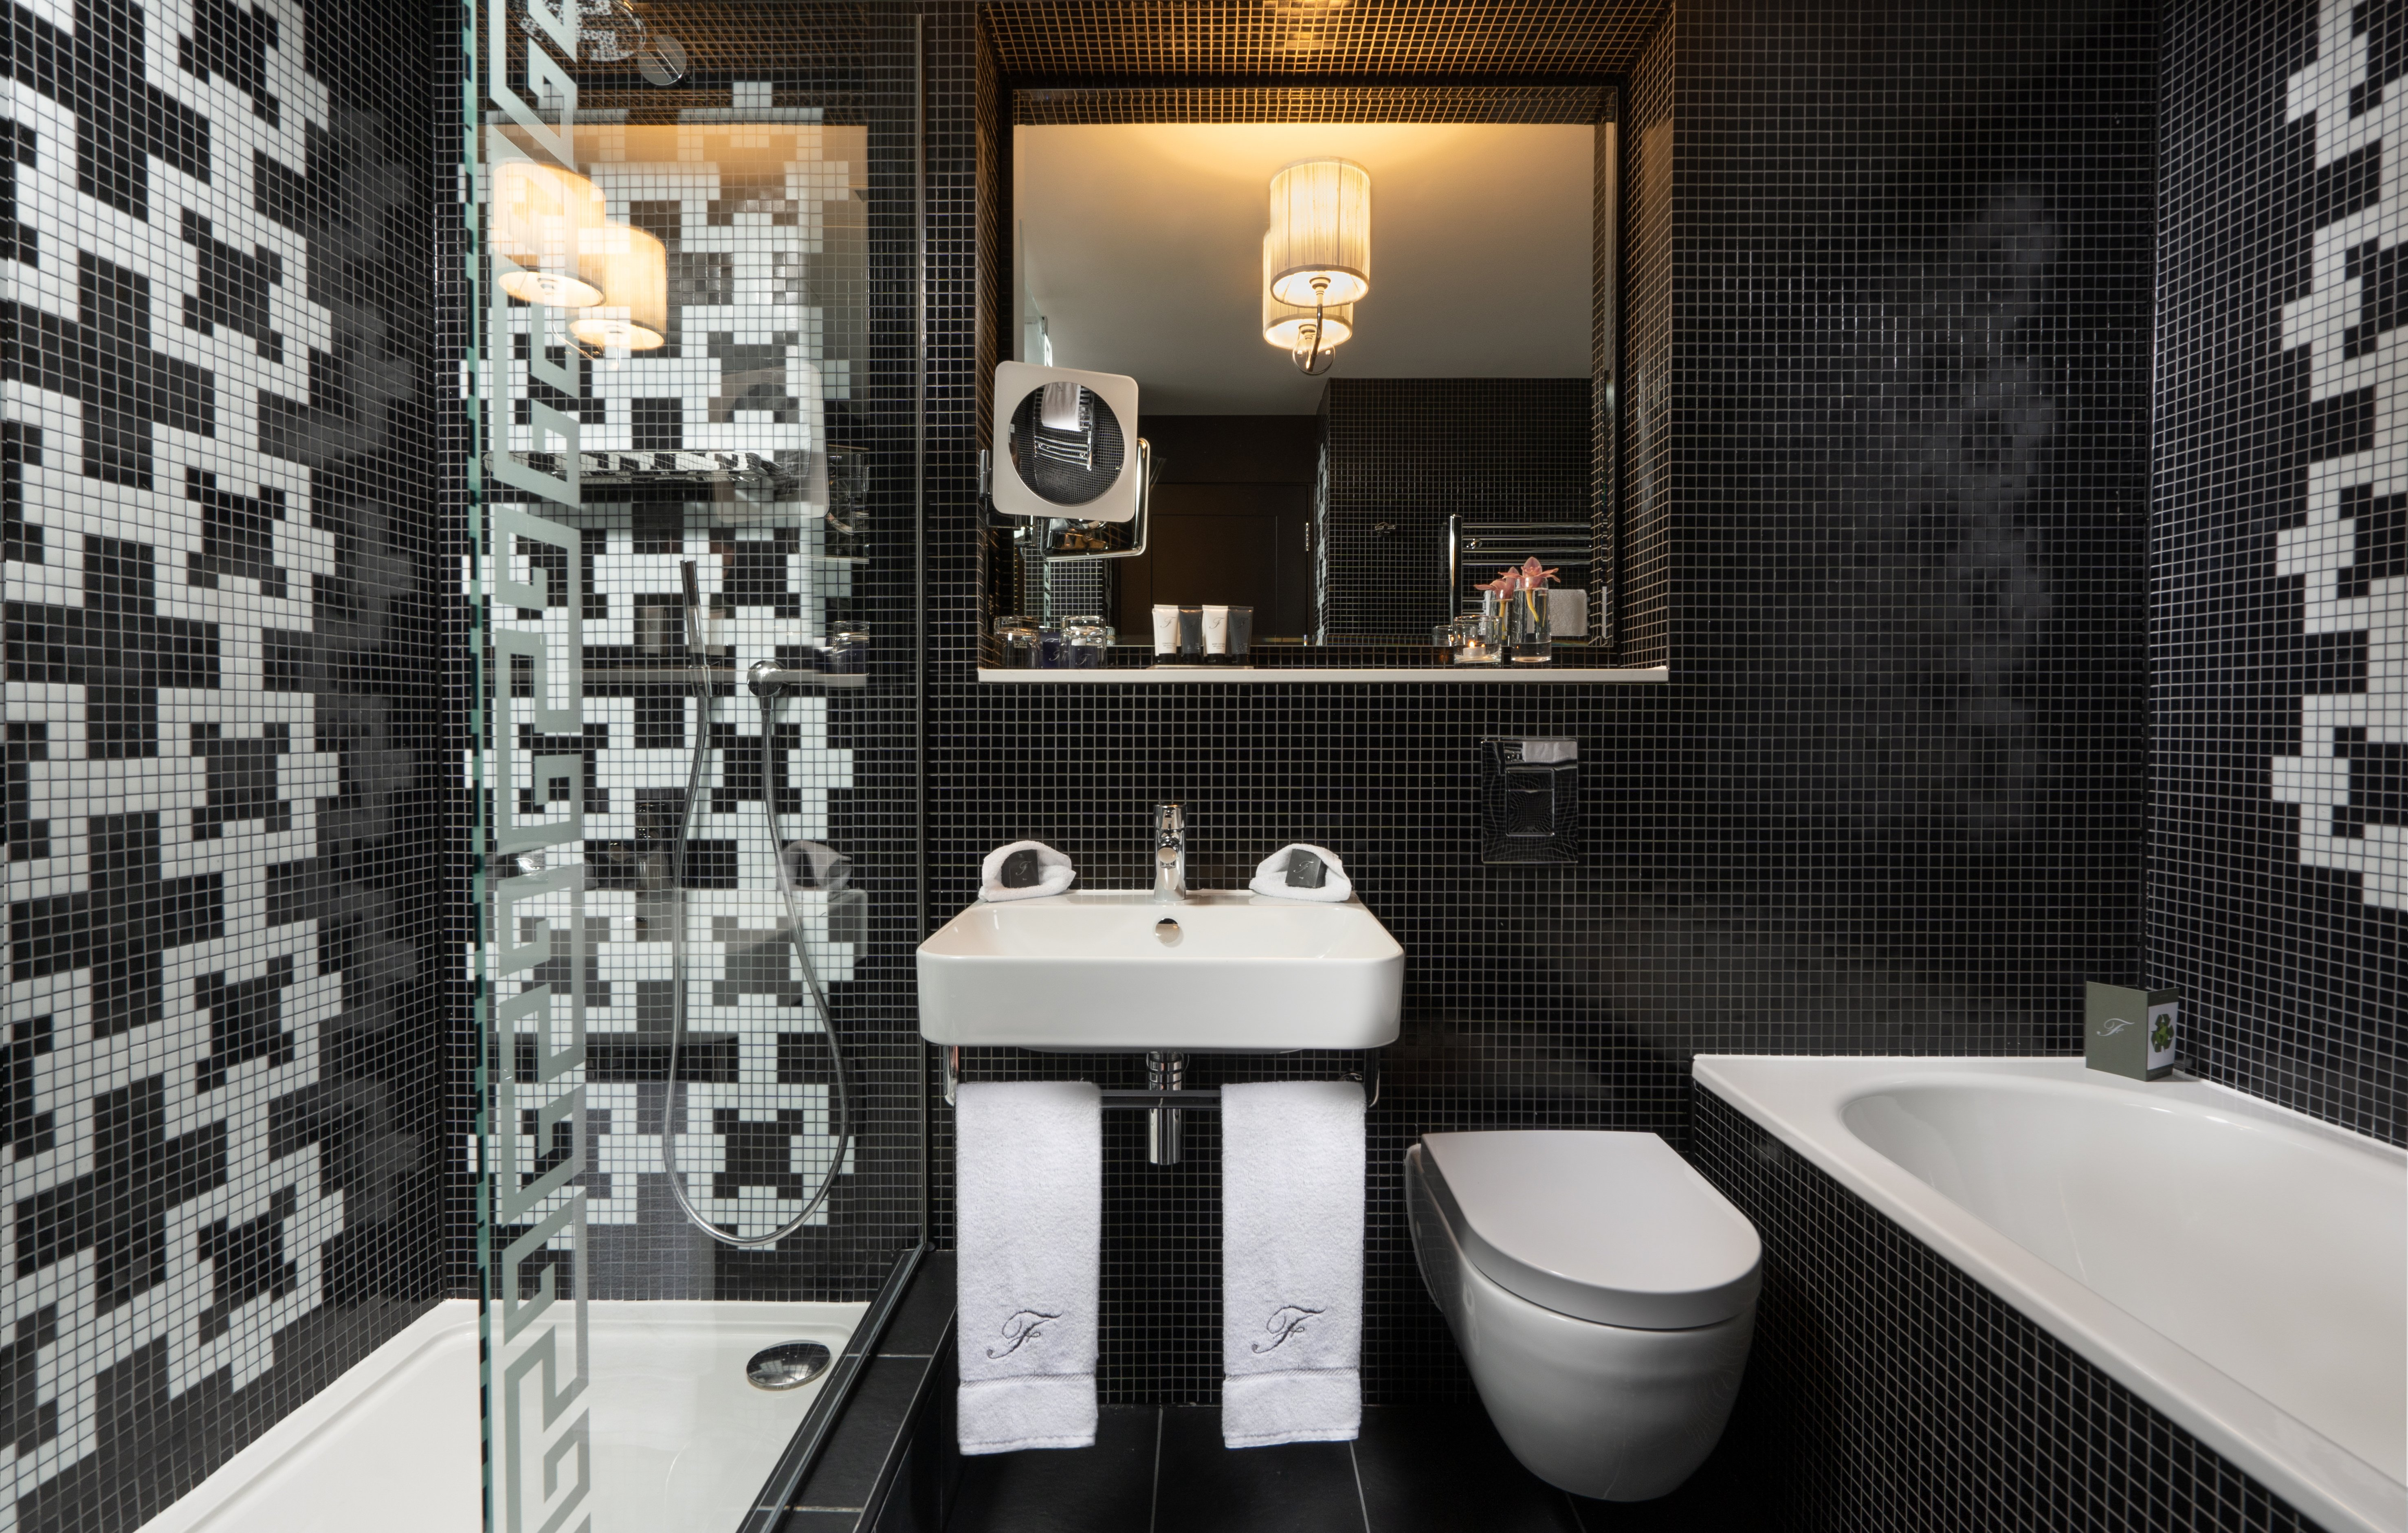 Carlanto Tiles and Bathrooms - Fitzwilliam Hotel, Belfast